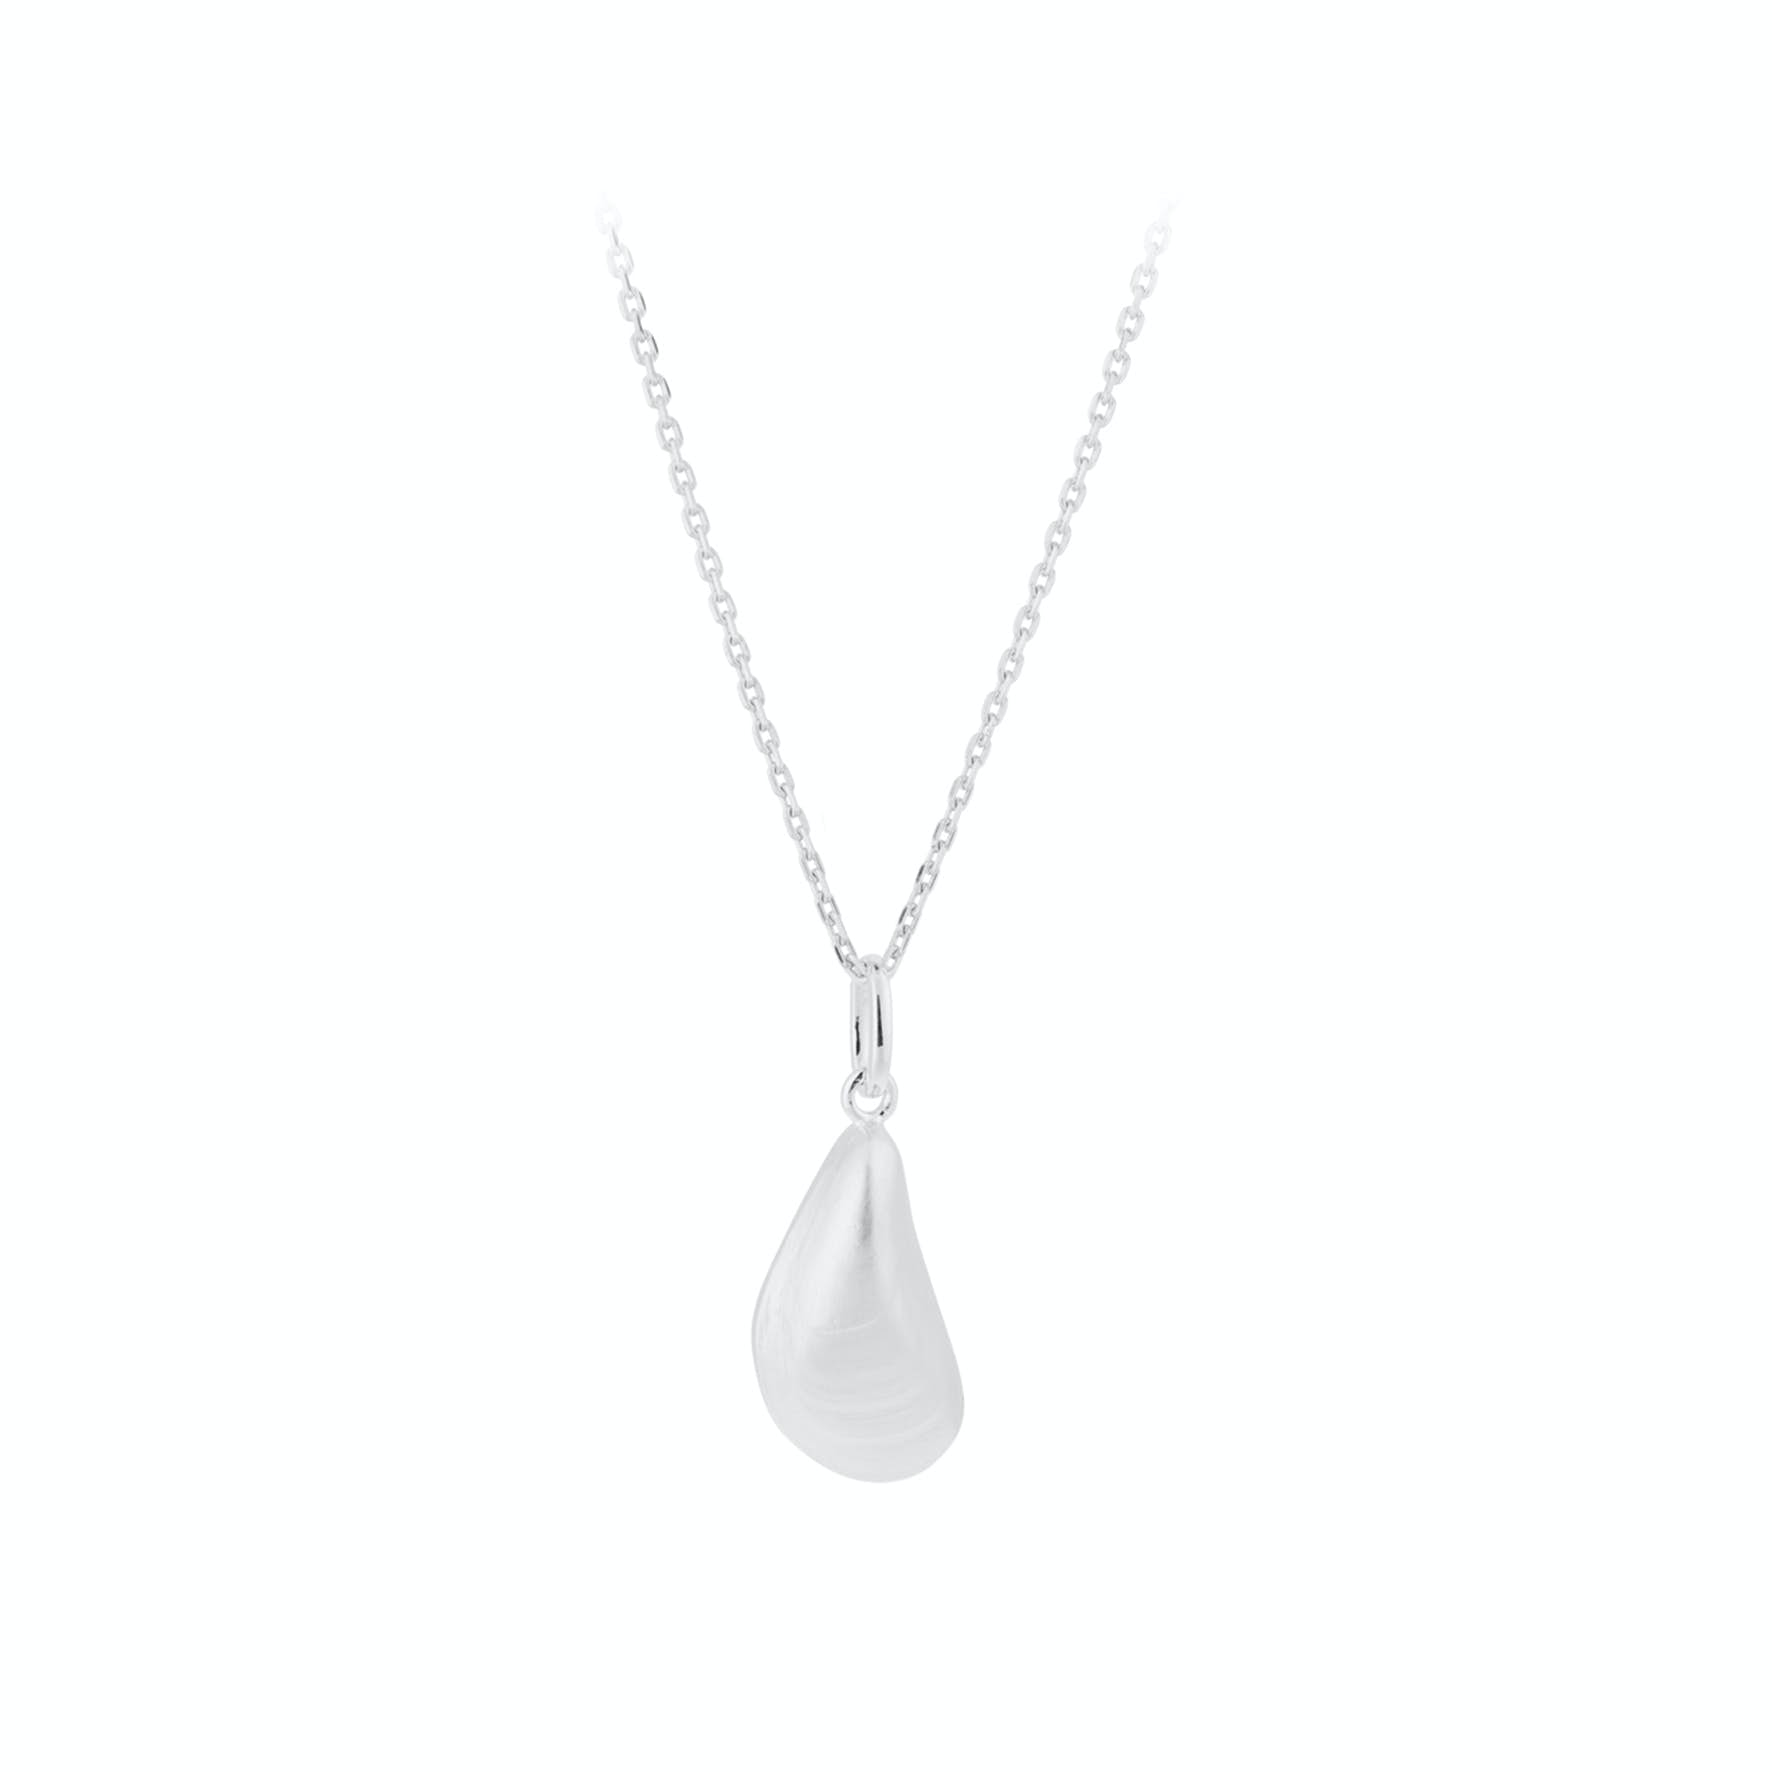 Seashell Necklace von Pernille Corydon in Silber Sterling 925